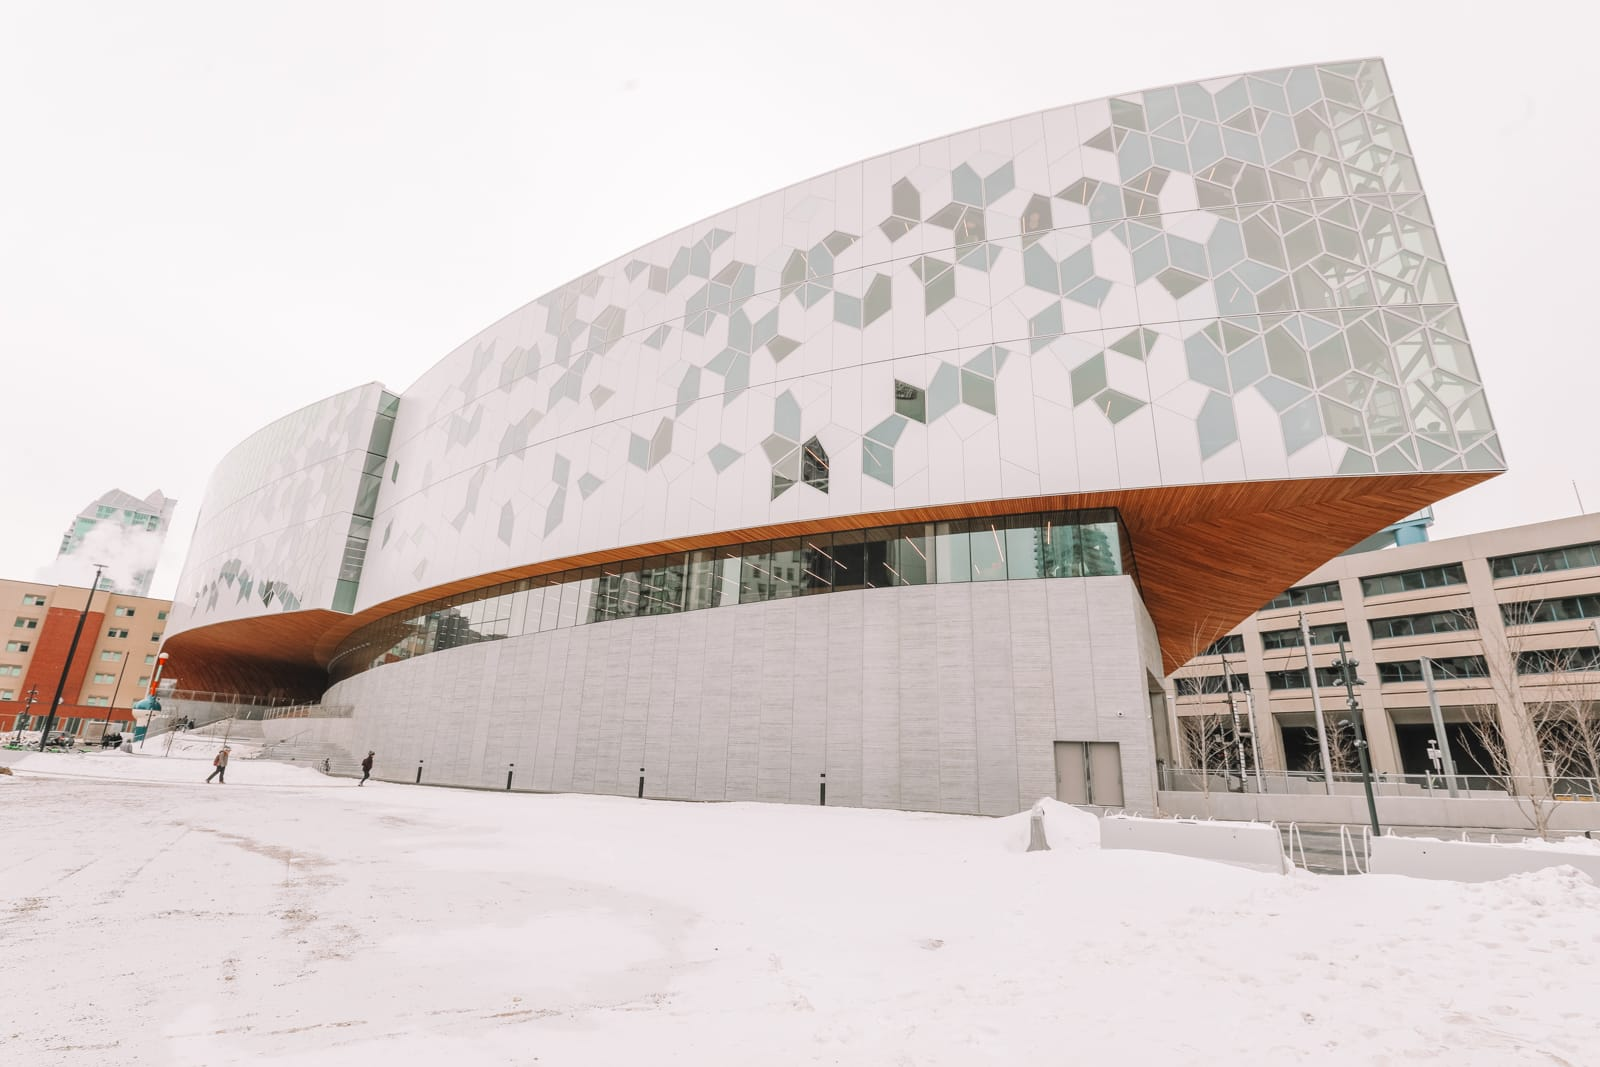 Finding Calgary's Architectural Masterpieces - Studio Bell And The Central Library (48)